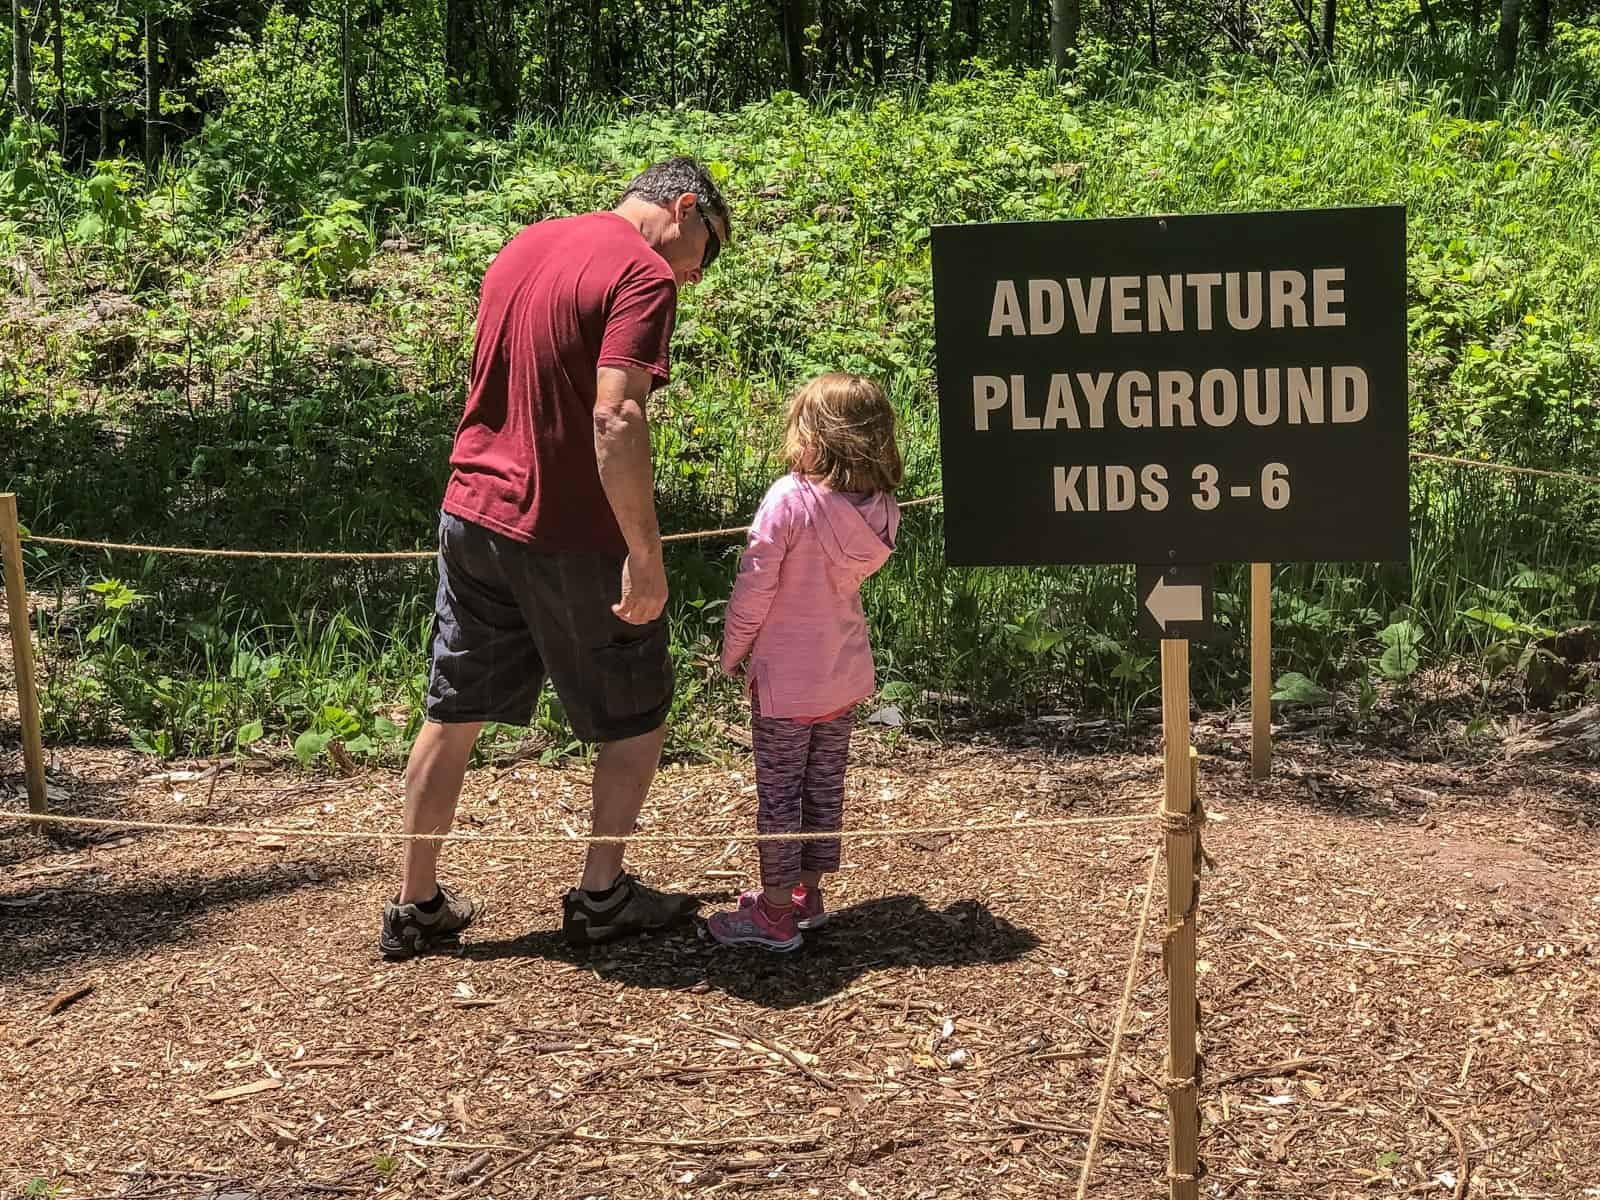 North Shore Adventure Park Adventure Playground